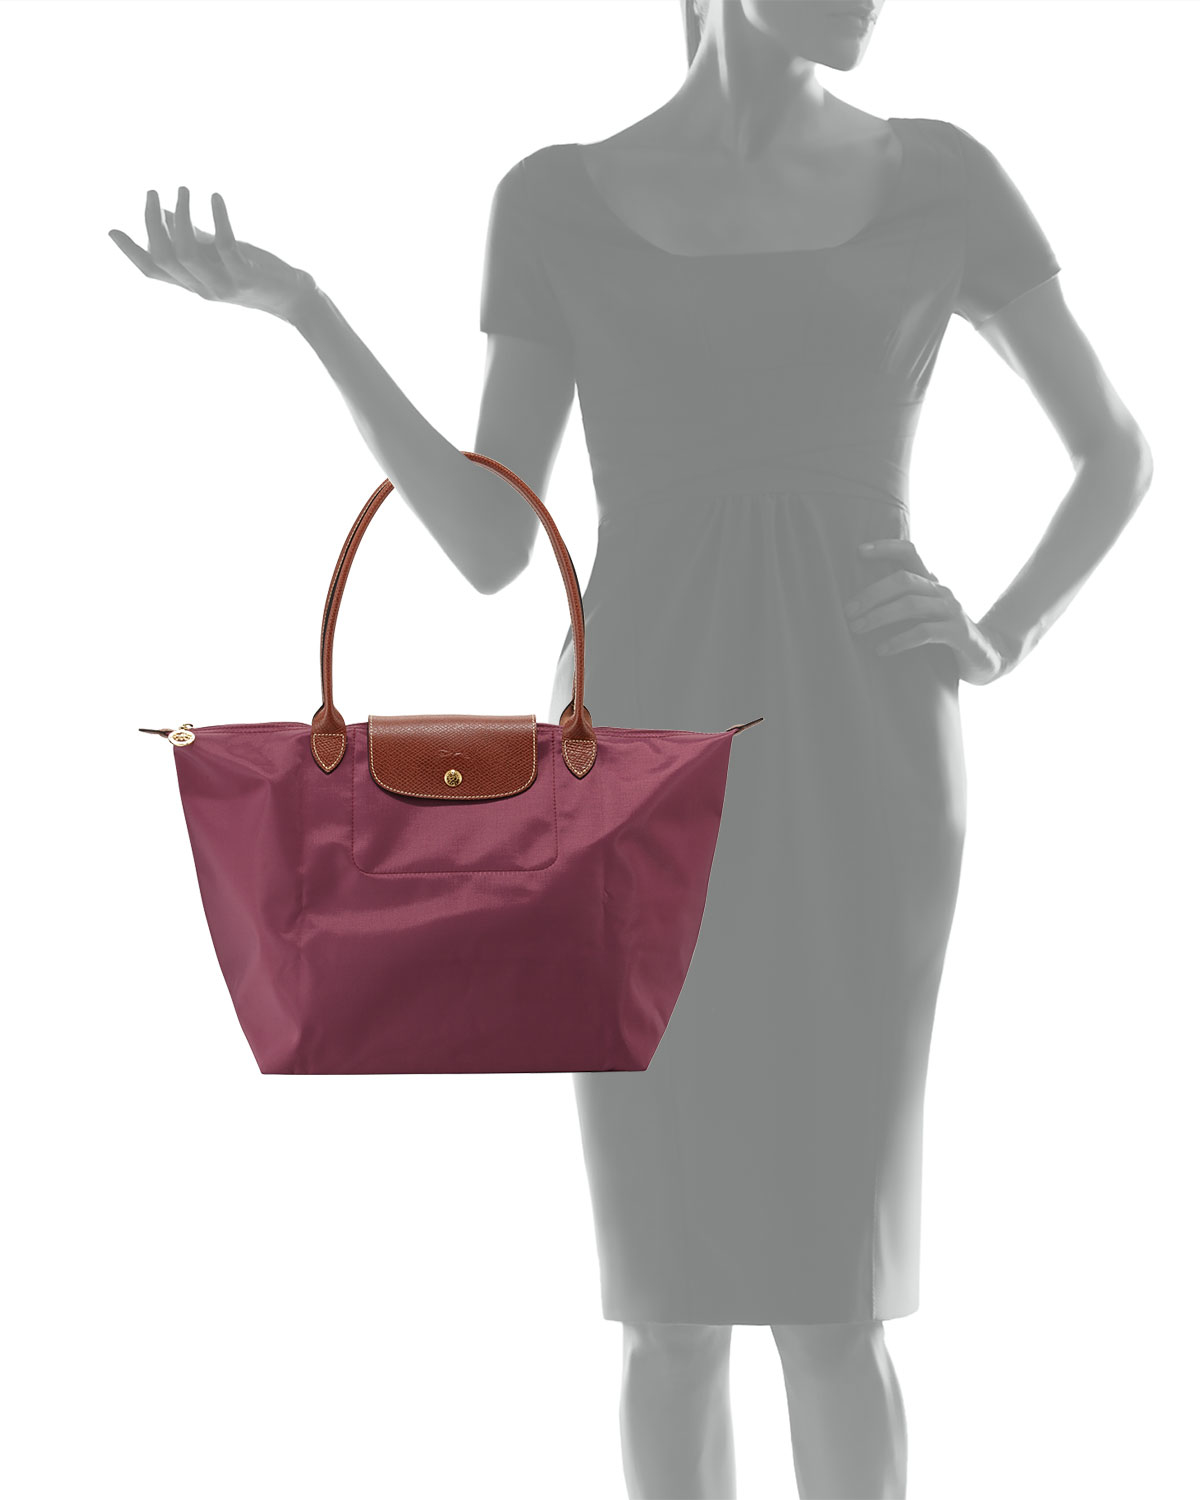 Longchamp Inspired Tote August 2017